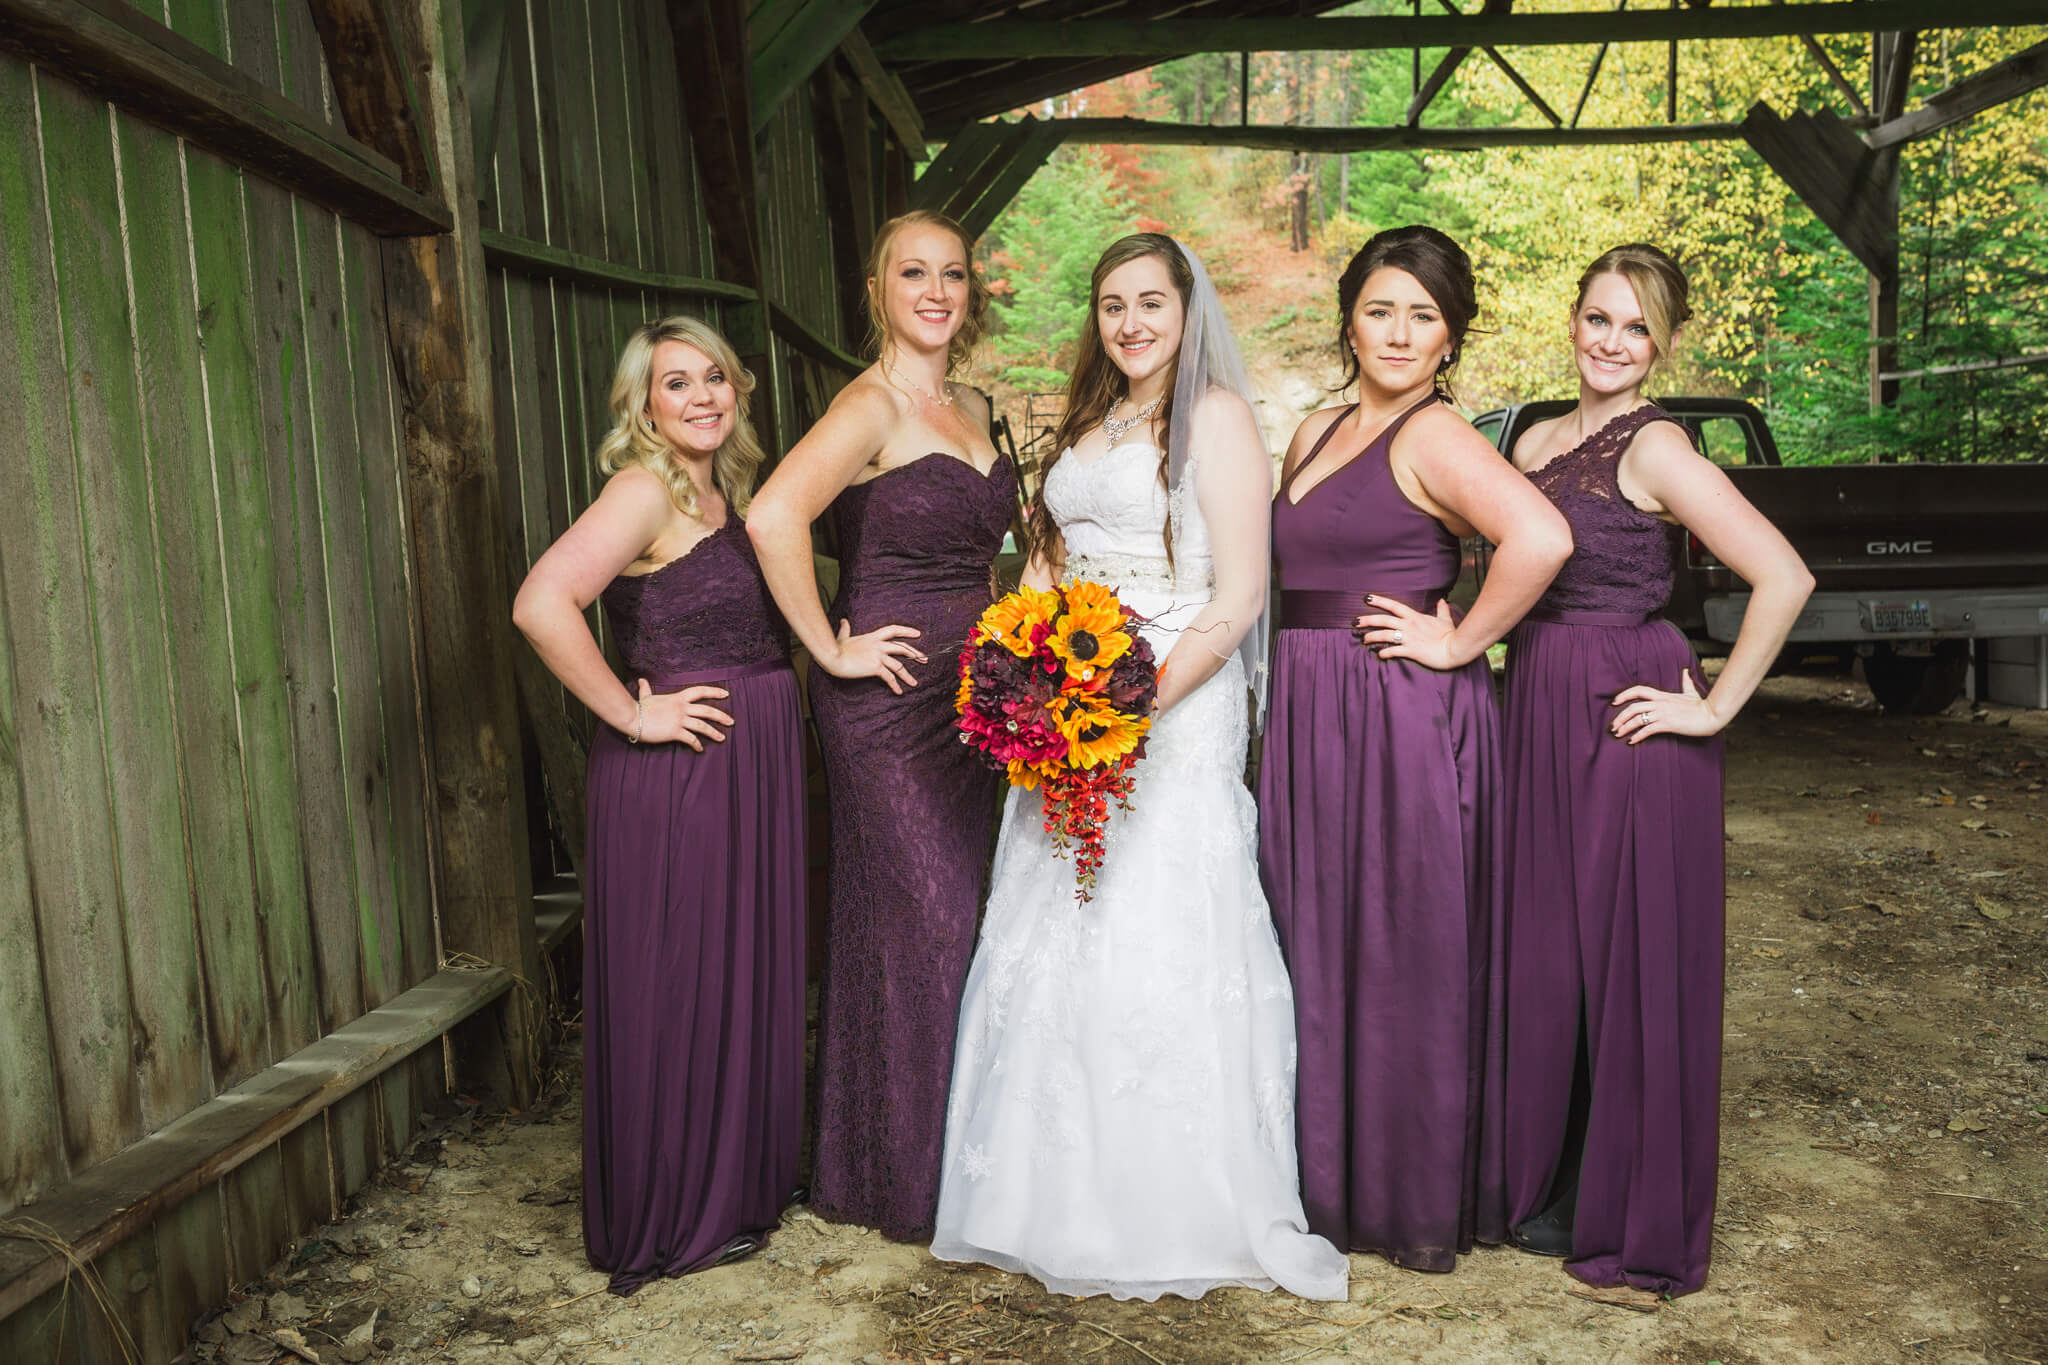 Mitcham's Barn Wedding-116.JPG